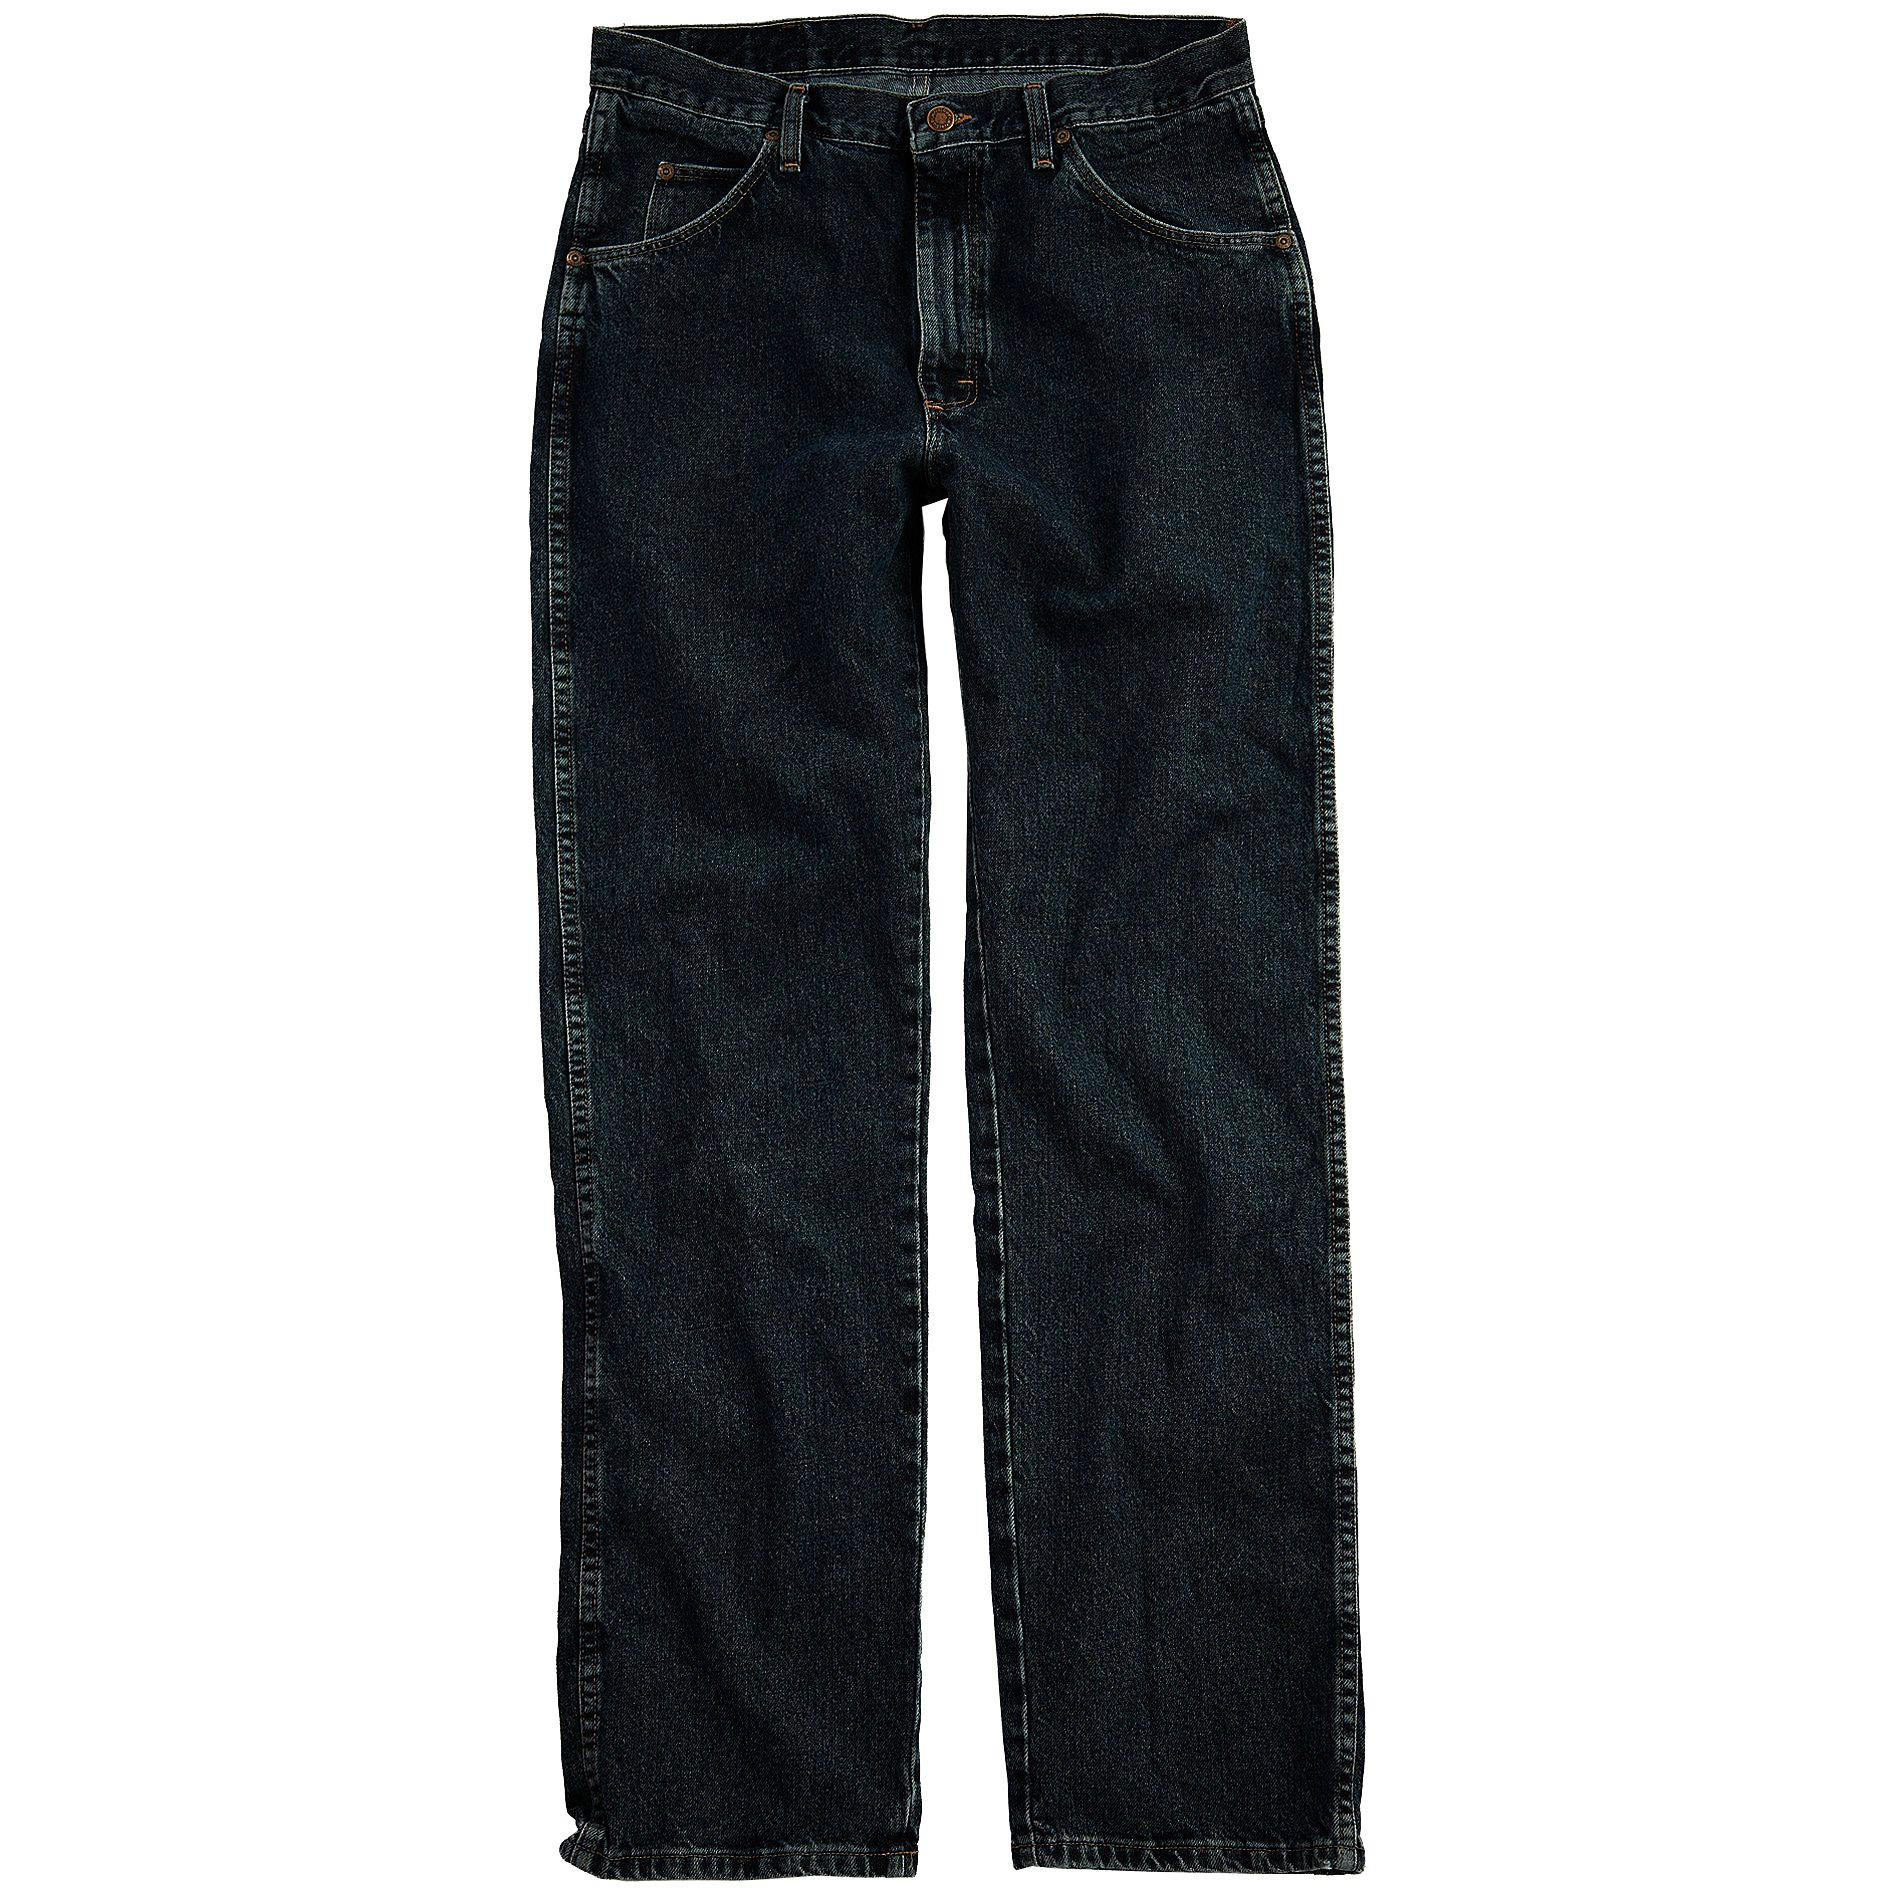 Wrangler Regular Fit Black Jean at Kmart.com